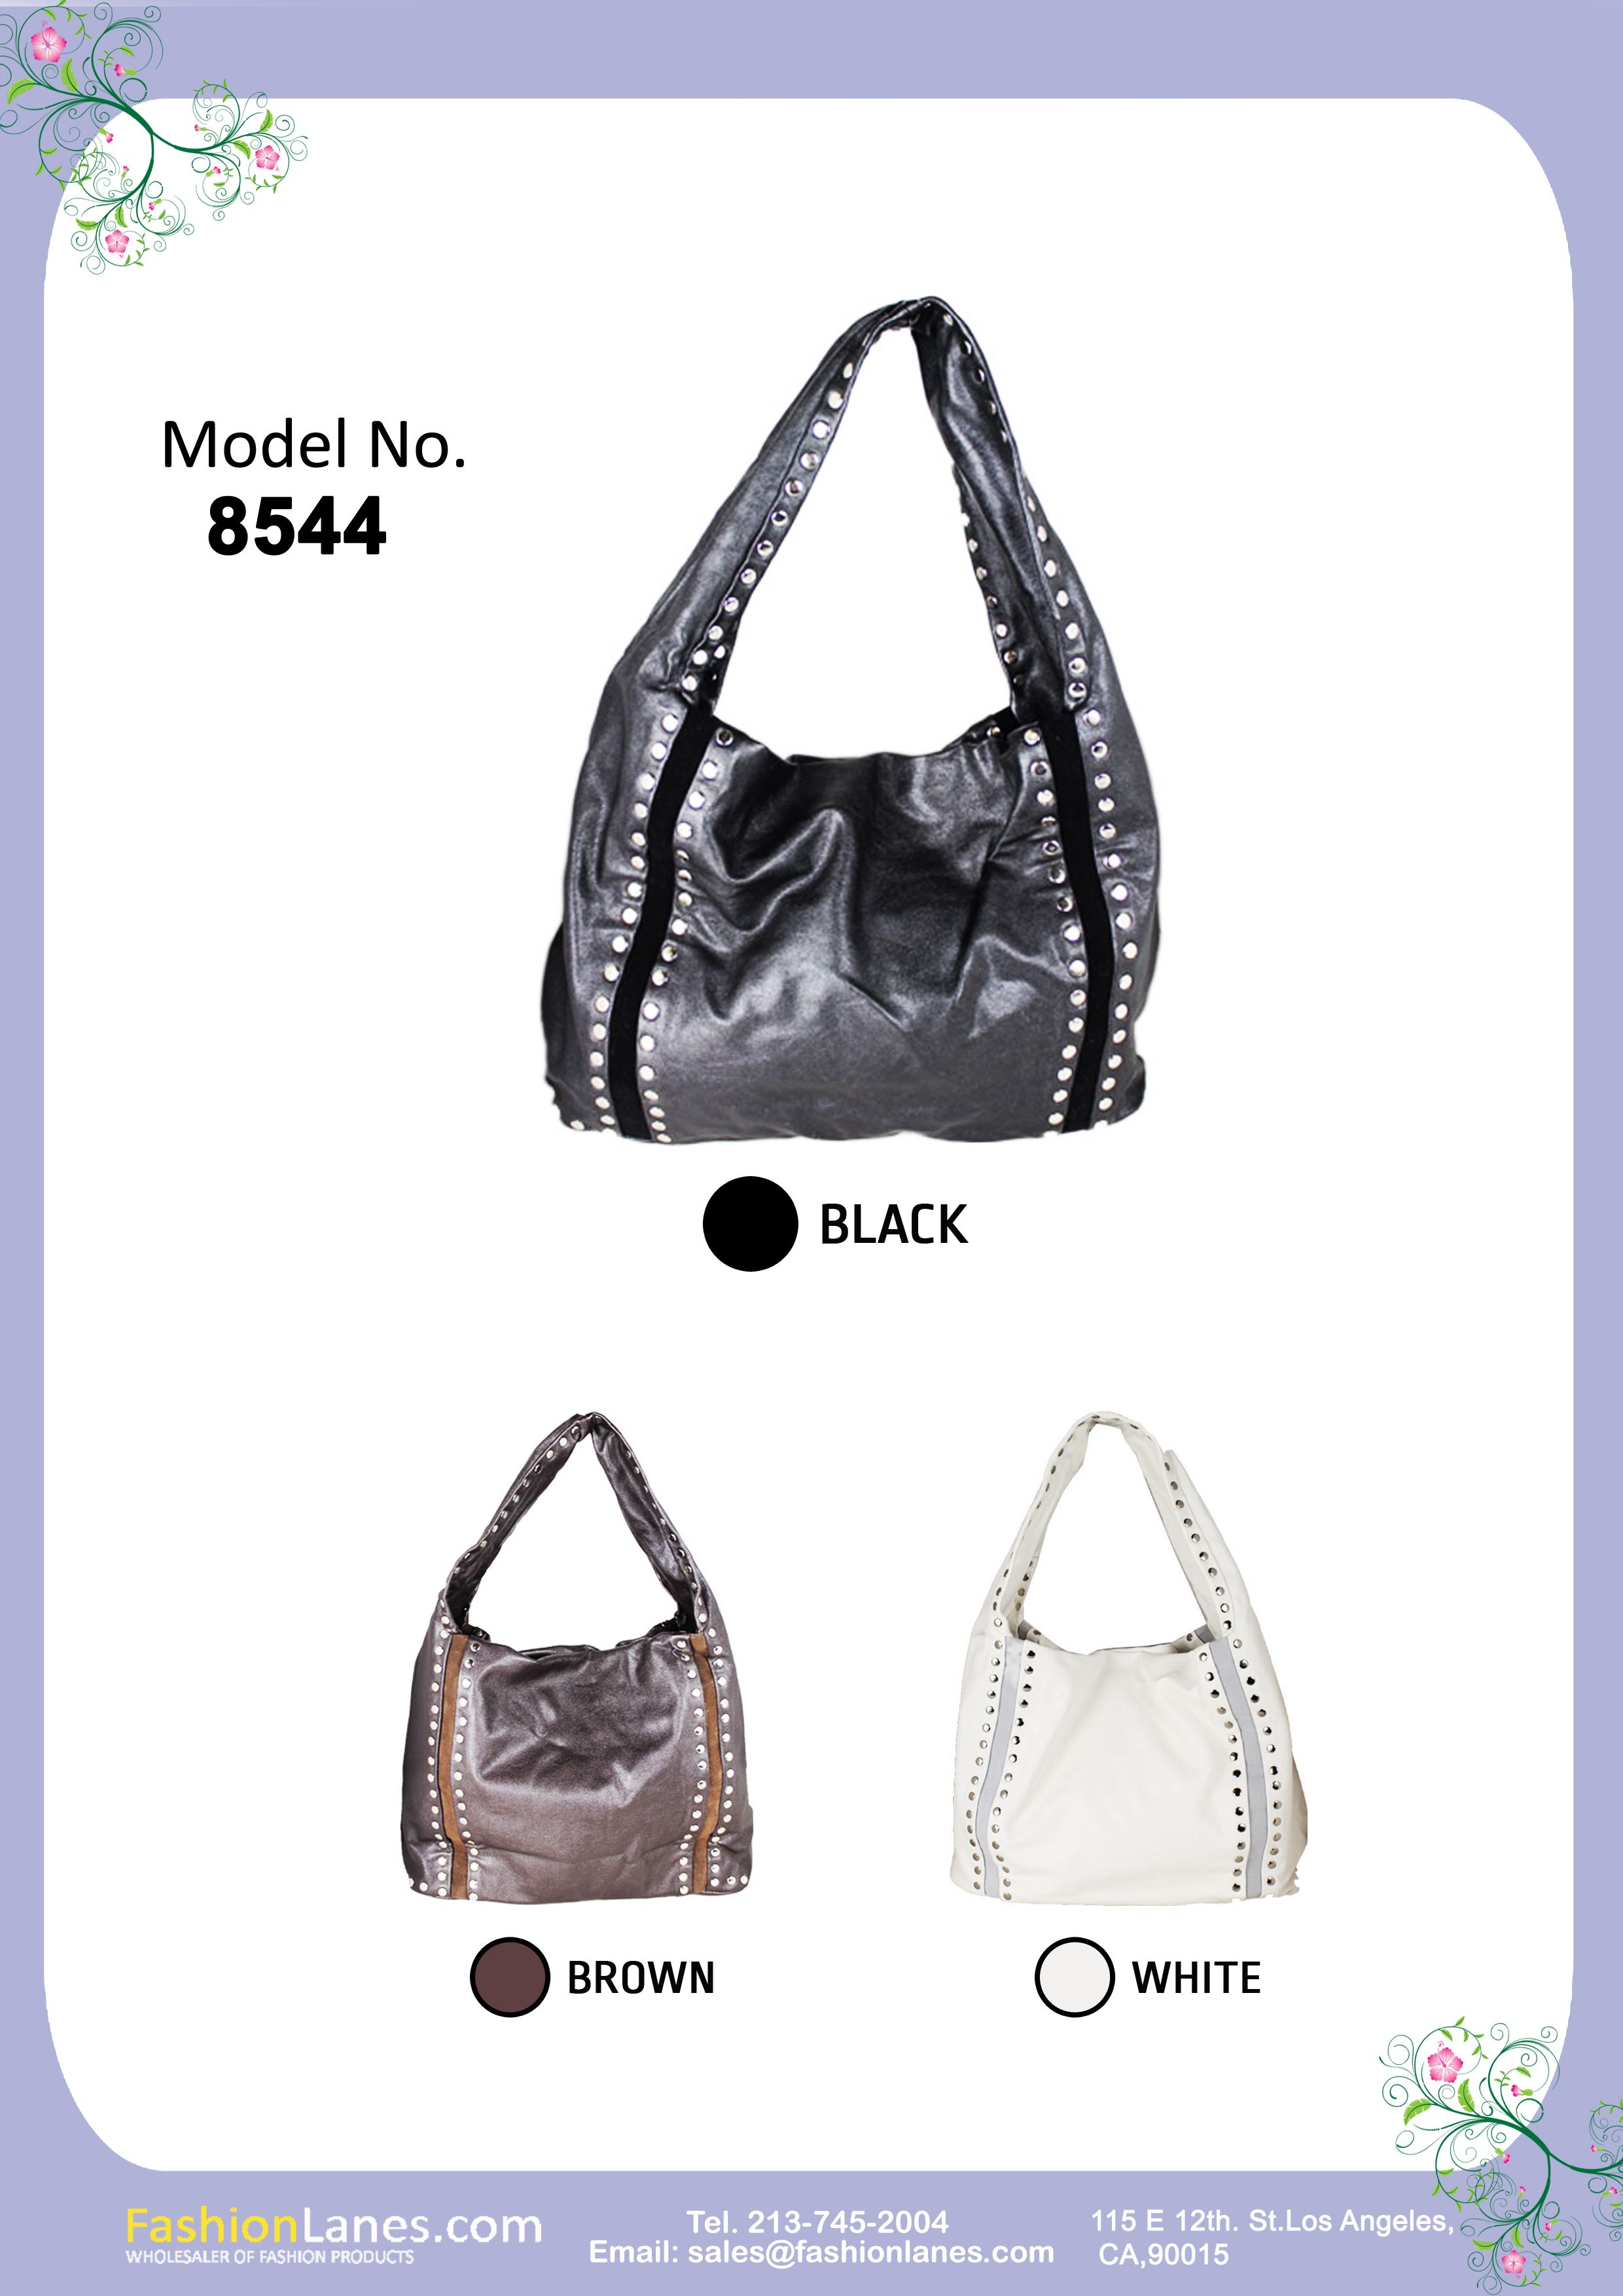 Checkout Our Amazing Handbags Model No 8544 Here